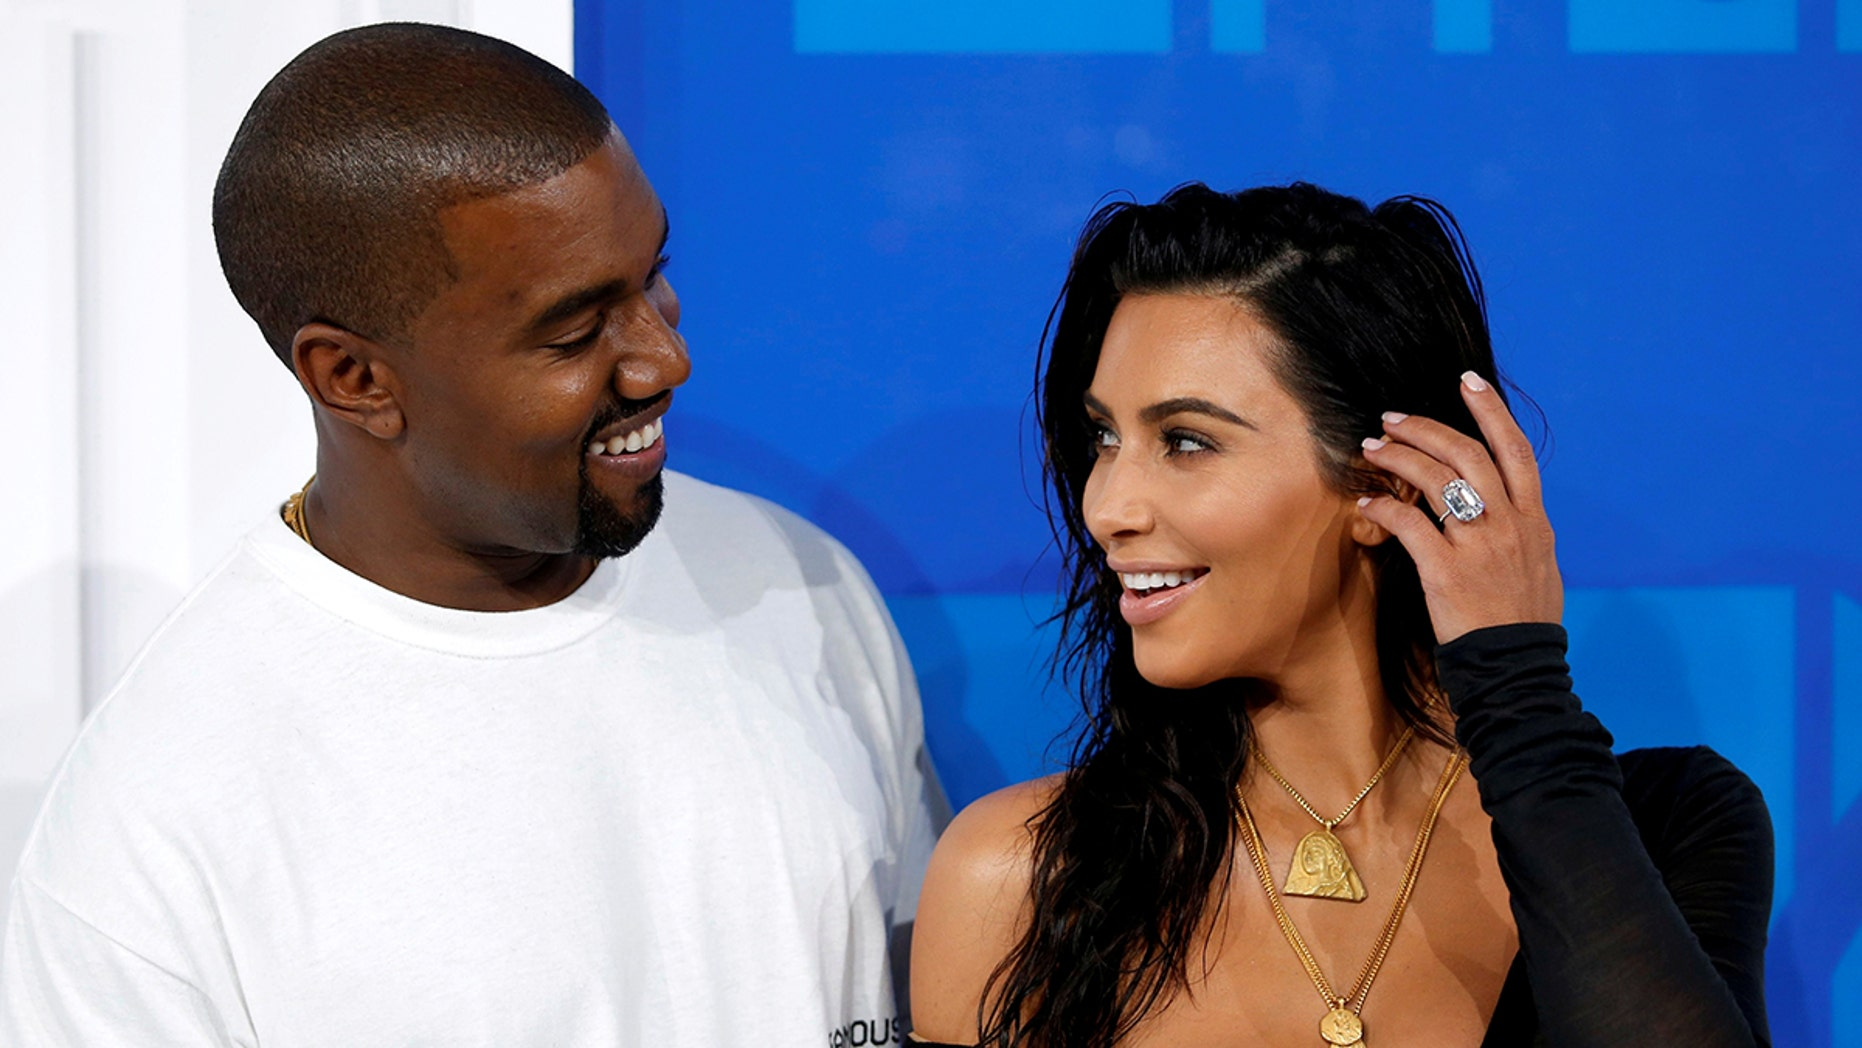 FILE PHOTO - Kim Kardashian and Kanye West arrive at the 2016 MTV Video Music Awards in New York, U.S., August 28, 2016. REUTERS/Eduardo Munoz/File Photo - S1BEUETWGVAA